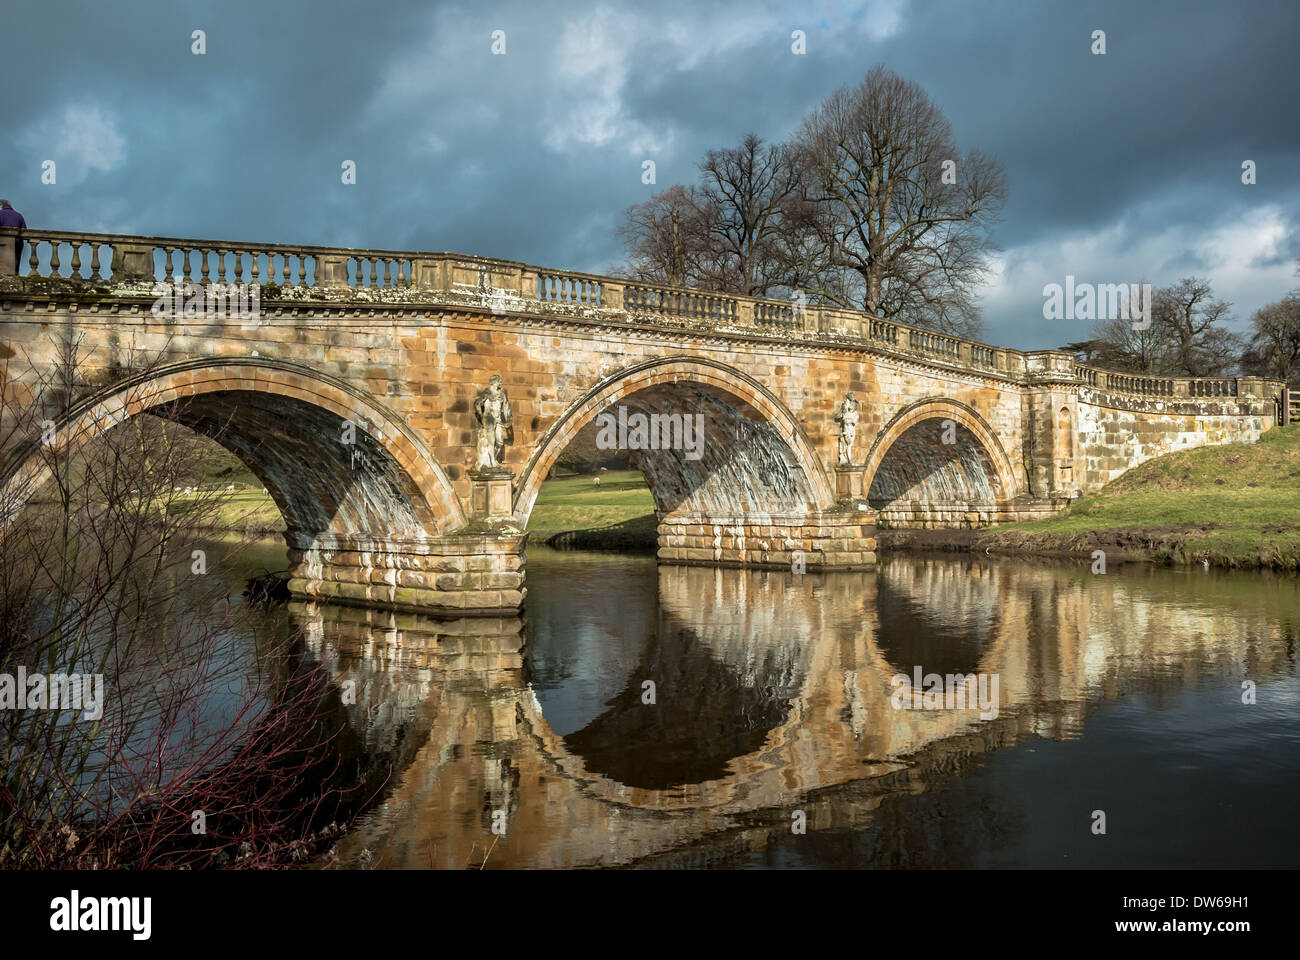 Stone road bridge over the River Derwent at Chatsworth house estate, Derbyshire. - Stock Image